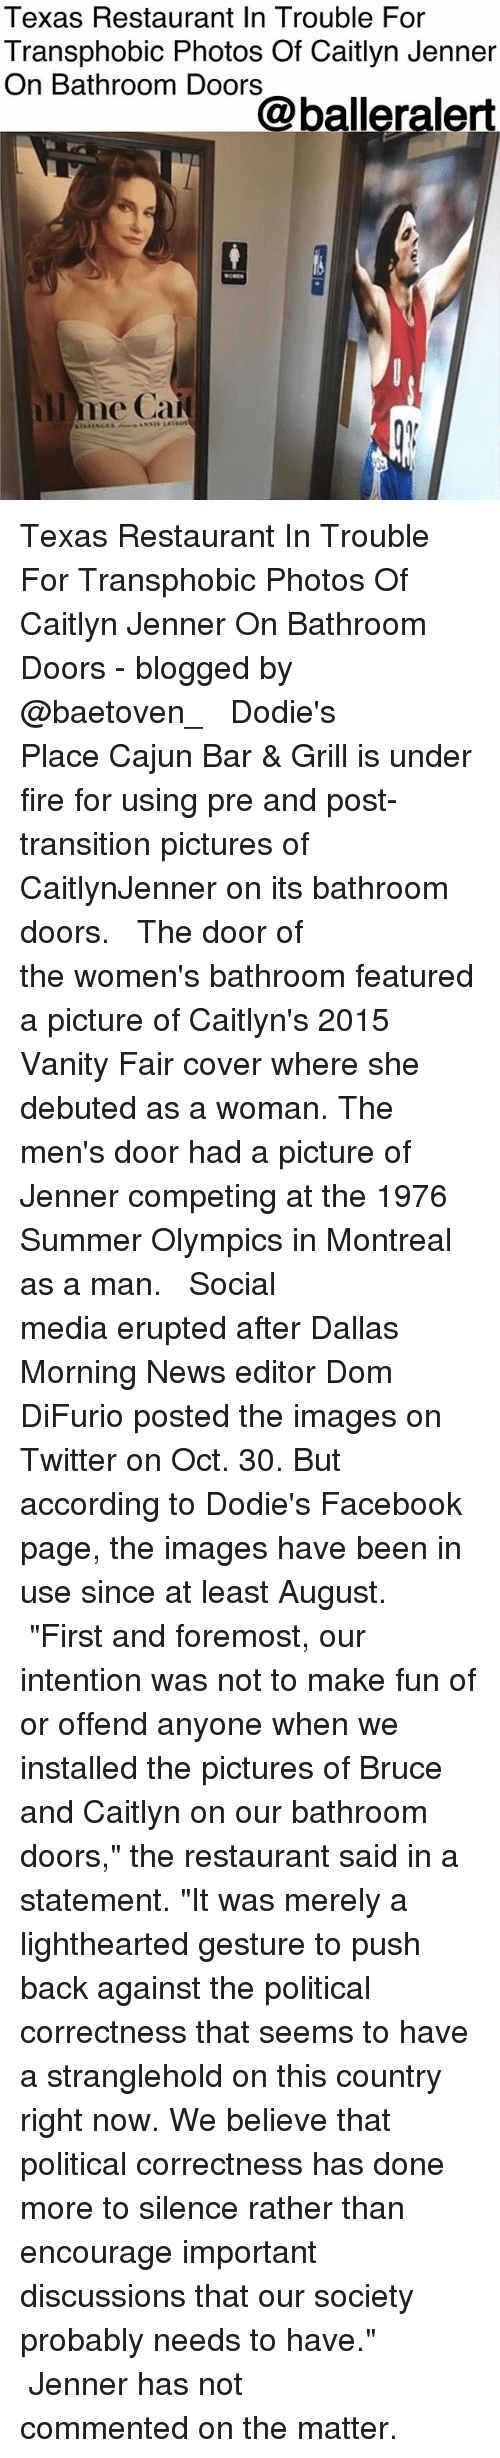 "Caitlyn Jenner, Facebook, and Fire: Texas Restaurant In Trouble For  Transphobic Photos Of Caitlyn Jenner  On Bathroom Doors  @balleralert  llme Cai Texas Restaurant In Trouble For Transphobic Photos Of Caitlyn Jenner On Bathroom Doors - blogged by @baetoven_ ⠀⠀⠀⠀⠀⠀⠀ ⠀⠀⠀⠀⠀⠀⠀ Dodie's Place Cajun Bar & Grill is under fire for using pre and post-transition pictures of CaitlynJenner on its bathroom doors. ⠀⠀⠀⠀⠀⠀⠀ ⠀⠀⠀⠀⠀⠀⠀ The door of the women's bathroom featured a picture of Caitlyn's 2015 Vanity Fair cover where she debuted as a woman. The men's door had a picture of Jenner competing at the 1976 Summer Olympics in Montreal as a man. ⠀⠀⠀⠀⠀⠀⠀ ⠀⠀⠀⠀⠀⠀⠀ Social media erupted after Dallas Morning News editor Dom DiFurio posted the images on Twitter on Oct. 30. But according to Dodie's Facebook page, the images have been in use since at least August. ⠀⠀⠀⠀⠀⠀⠀ ⠀⠀⠀⠀⠀⠀⠀ ""First and foremost, our intention was not to make fun of or offend anyone when we installed the pictures of Bruce and Caitlyn on our bathroom doors,"" the restaurant said in a statement. ""It was merely a lighthearted gesture to push back against the political correctness that seems to have a stranglehold on this country right now. We believe that political correctness has done more to silence rather than encourage important discussions that our society probably needs to have."" ⠀⠀⠀⠀⠀⠀⠀ ⠀⠀⠀⠀⠀⠀⠀ Jenner has not commented on the matter."